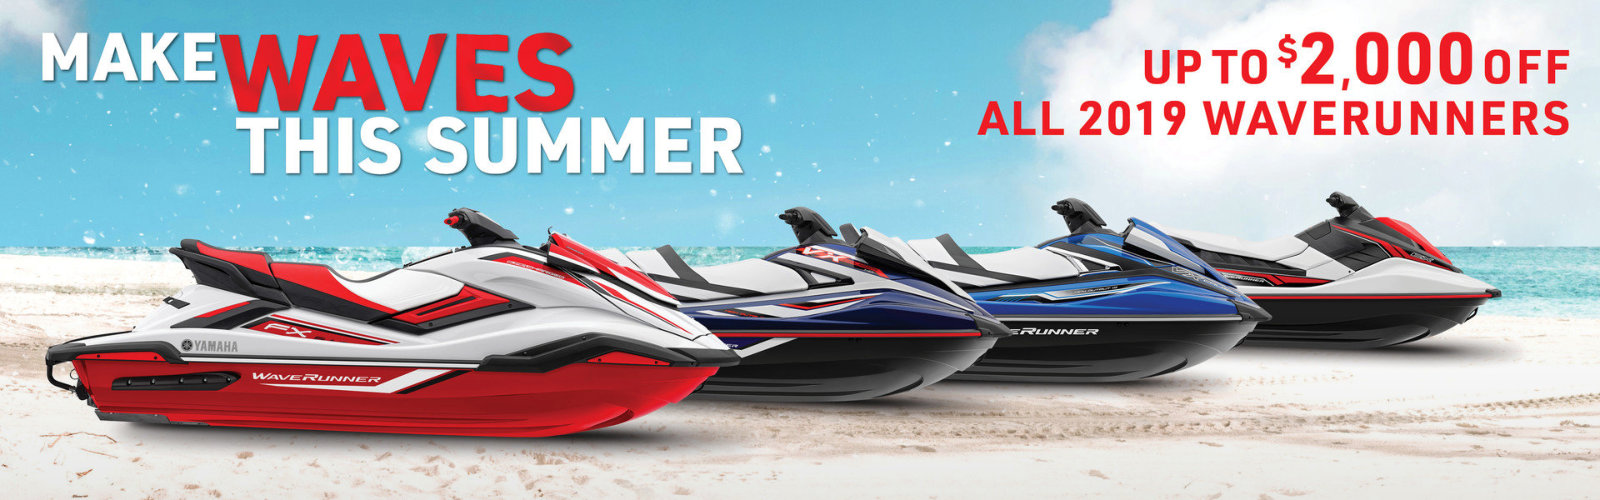 Up to $2000 off all 2019 Waverunners